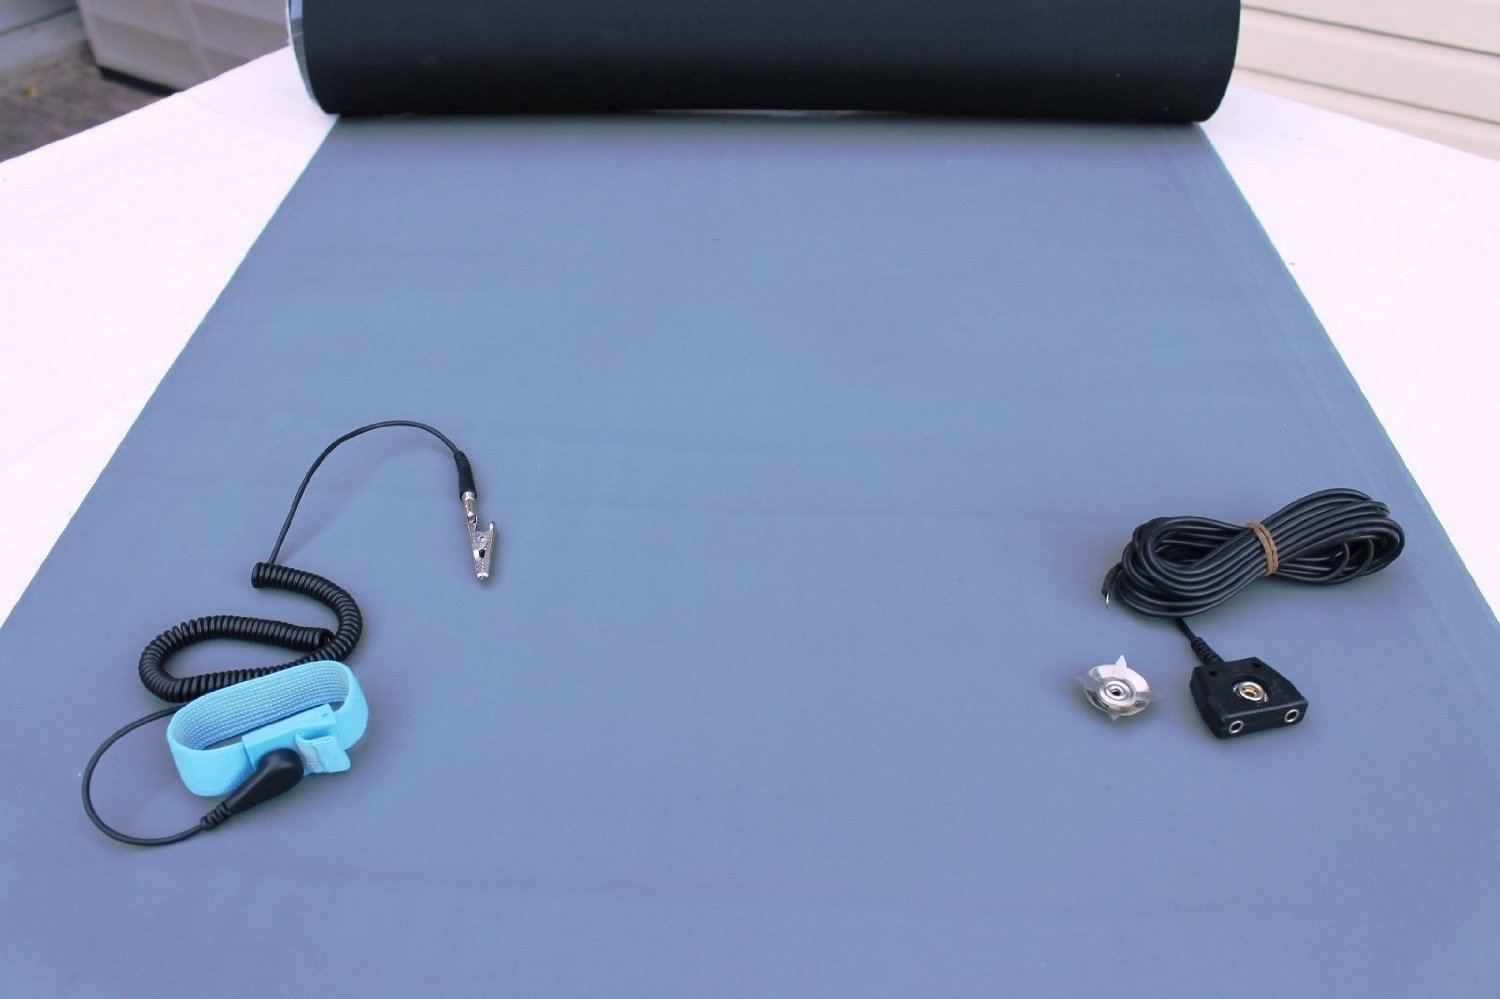 2LAYER RUBBER ESD ANTI-STATIC HI-TEMP GROUNDING MAT 24 X 48 W//GROUND CABLE-BLUE